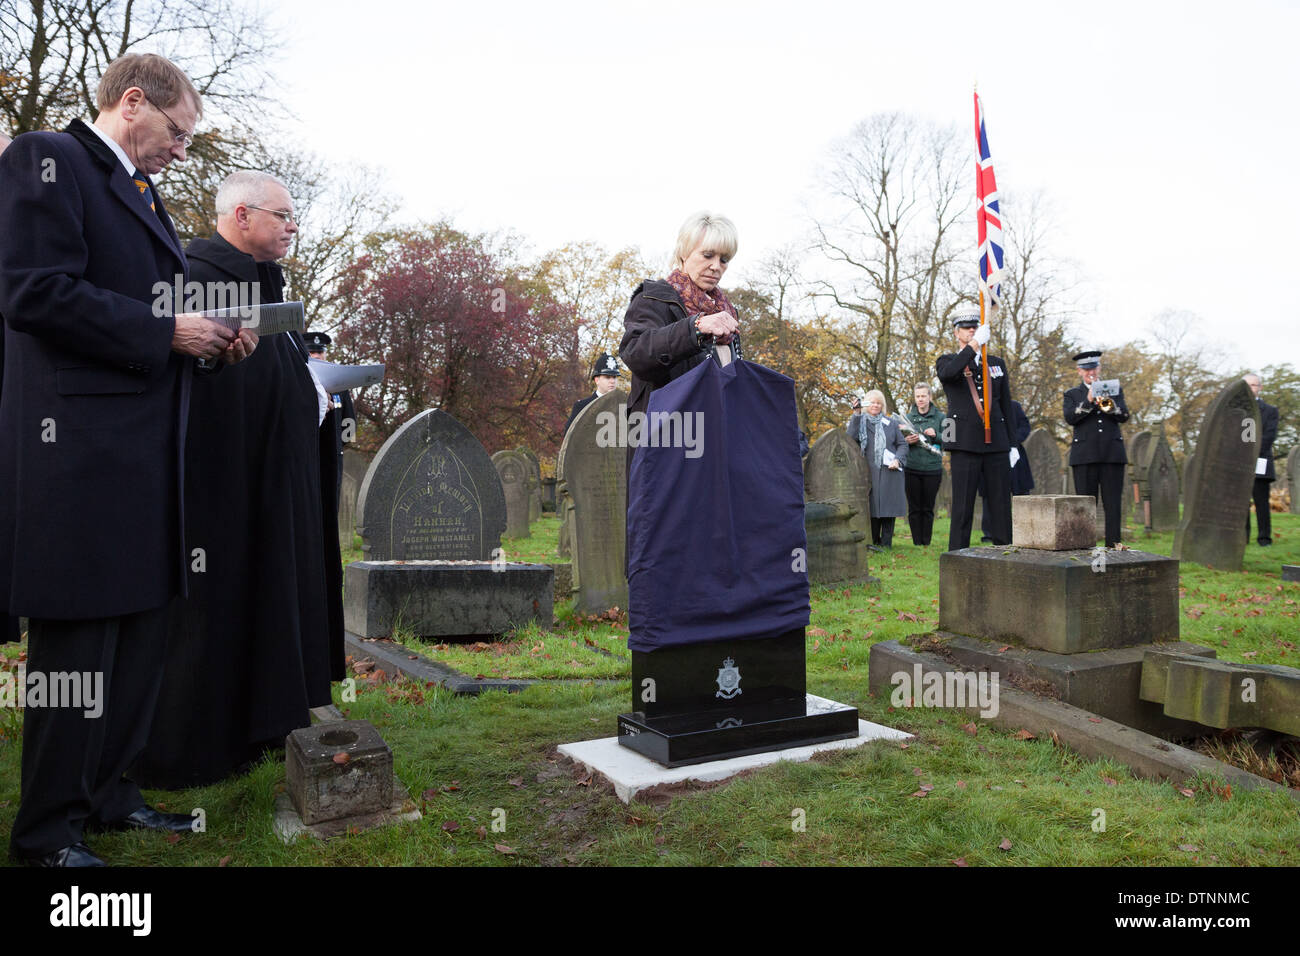 Geraldine Winner unveils the new gravestone marking the grave of PC James Gordon, who was murdered on duty 120 years ago. - Stock Image